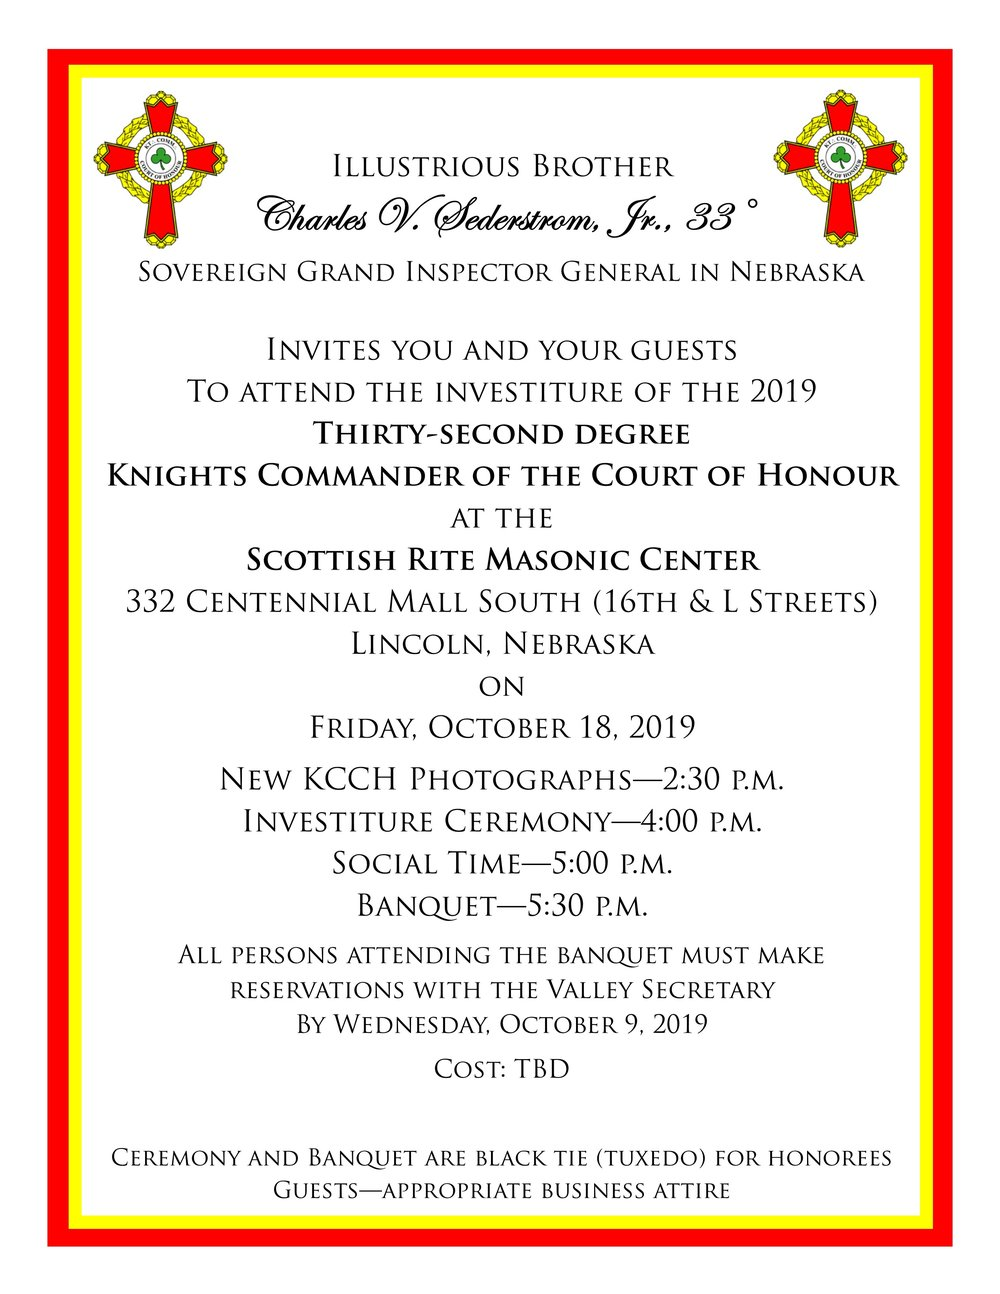 Click above to download a PDF copy of the 2019 KCCH invitation.